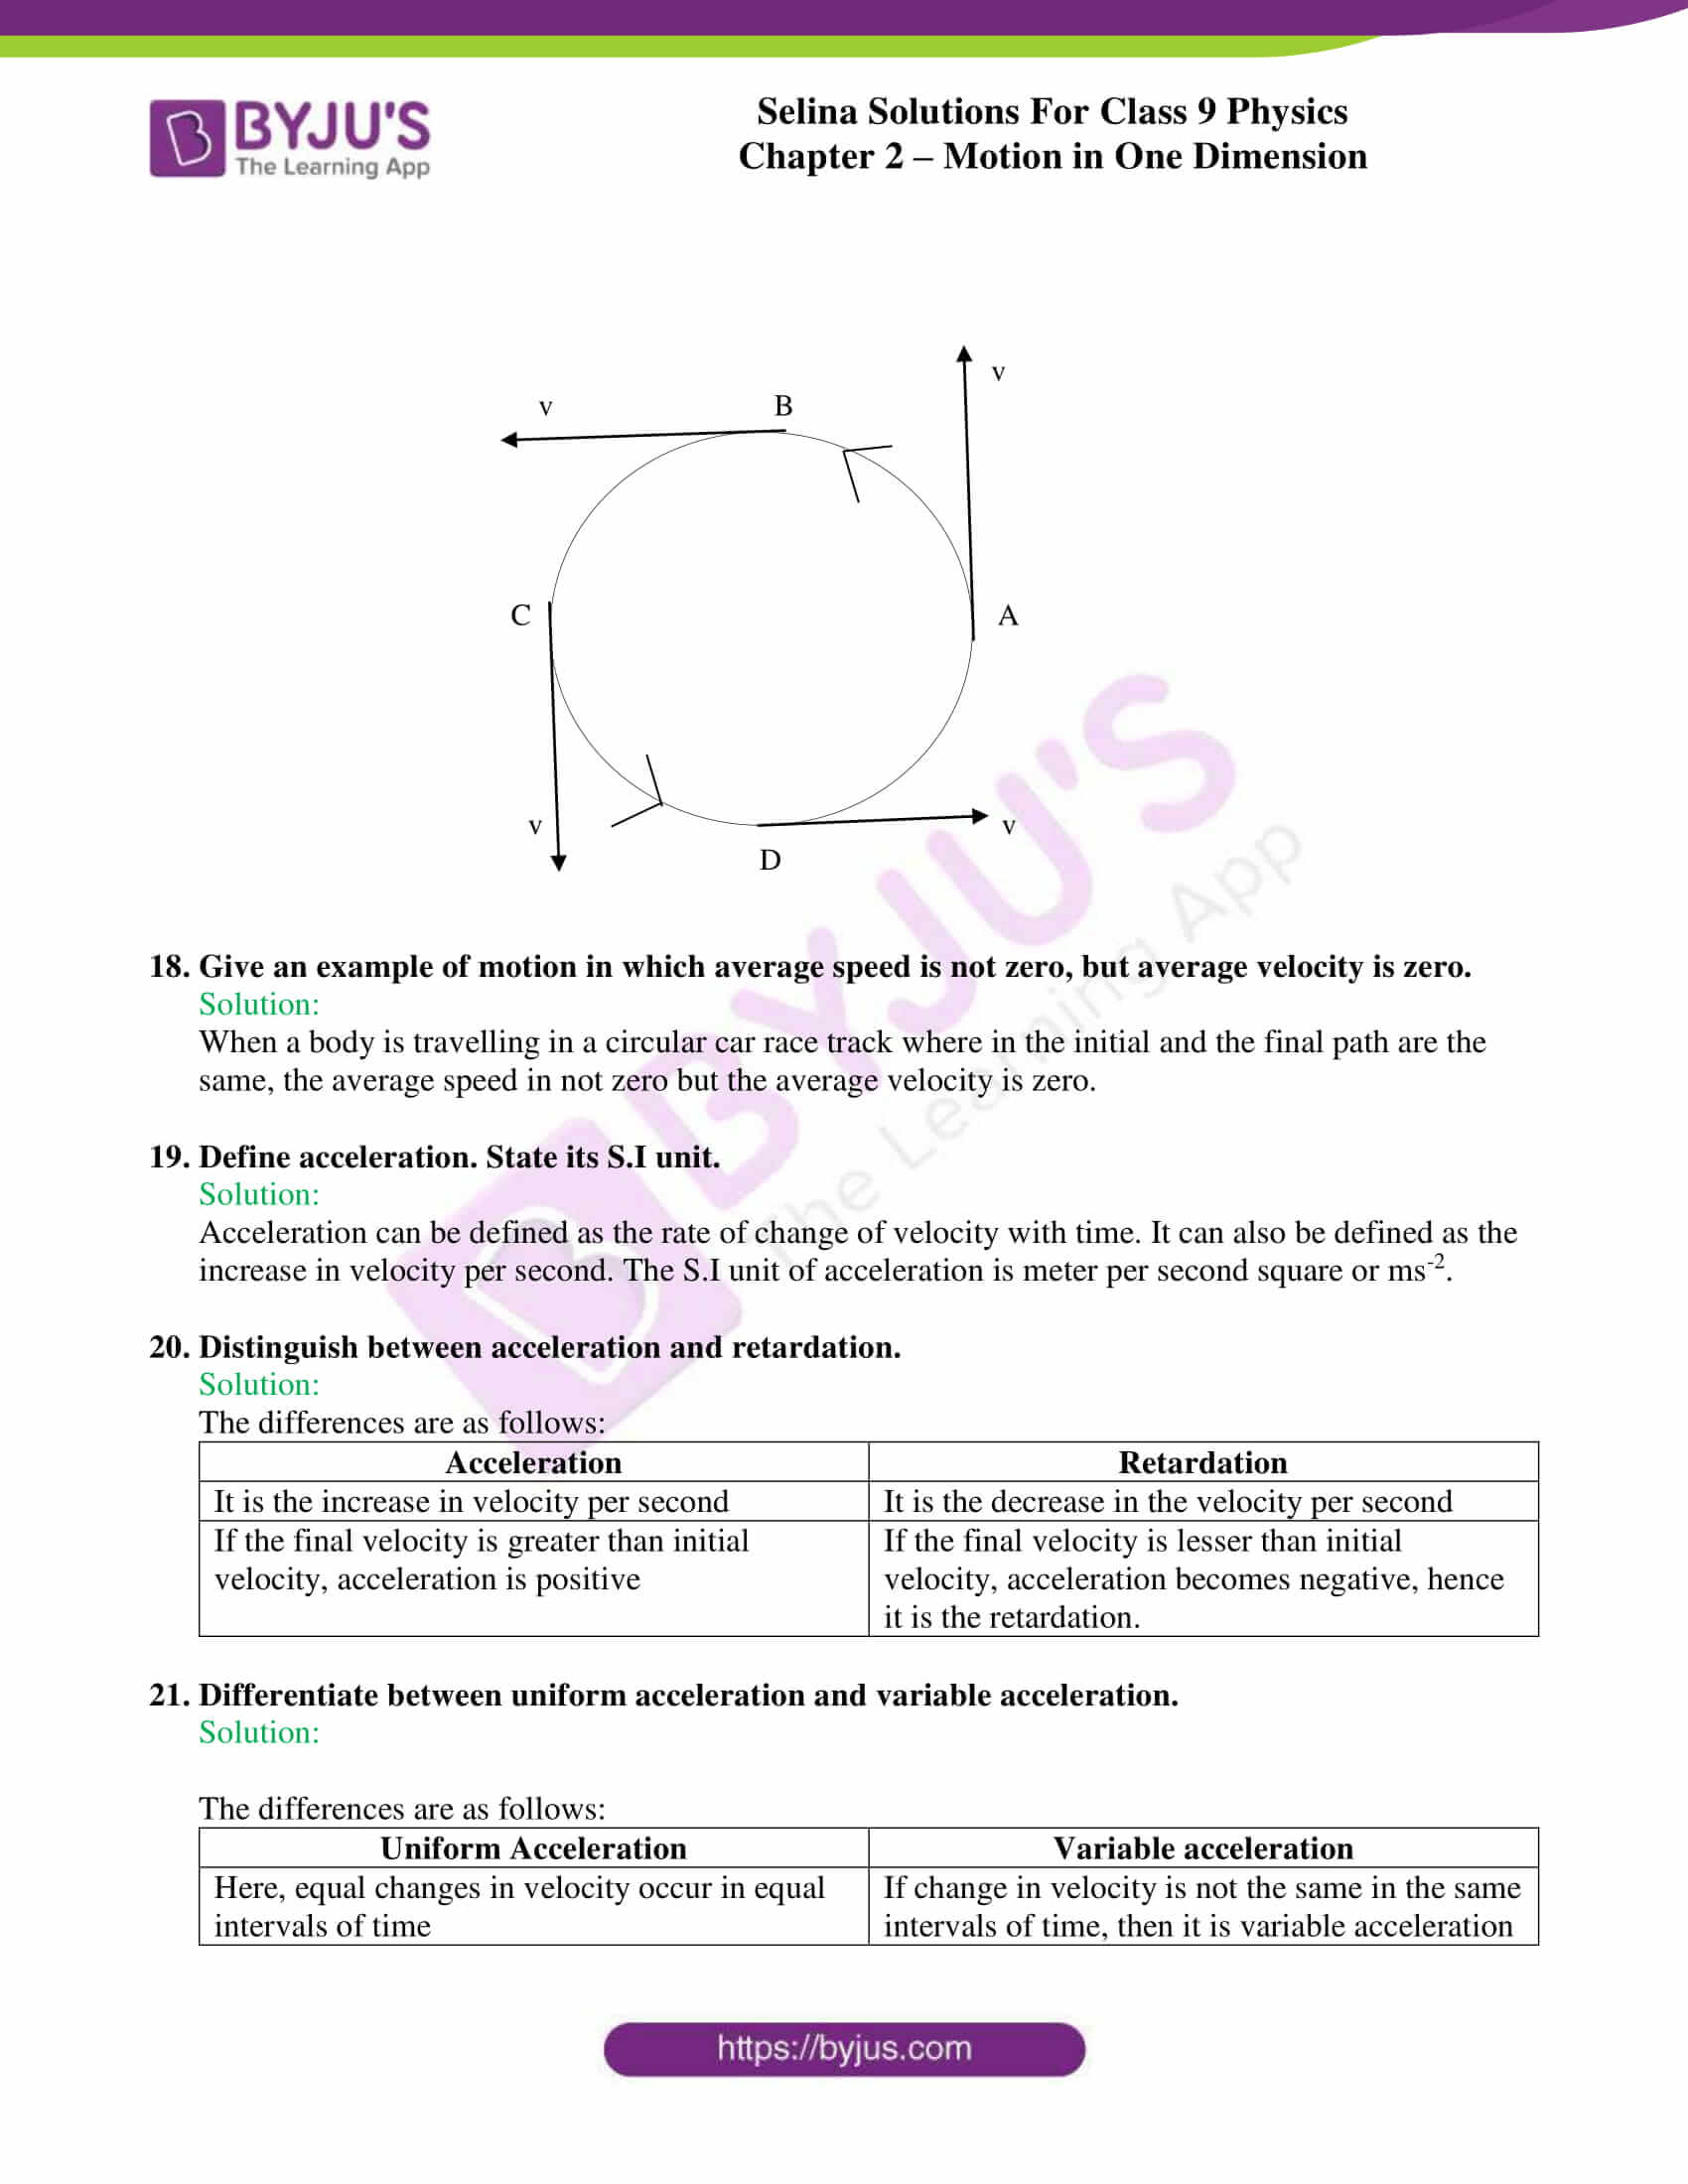 selina solutions class 9 physics chapter 2 Motion in One Dimension part 04